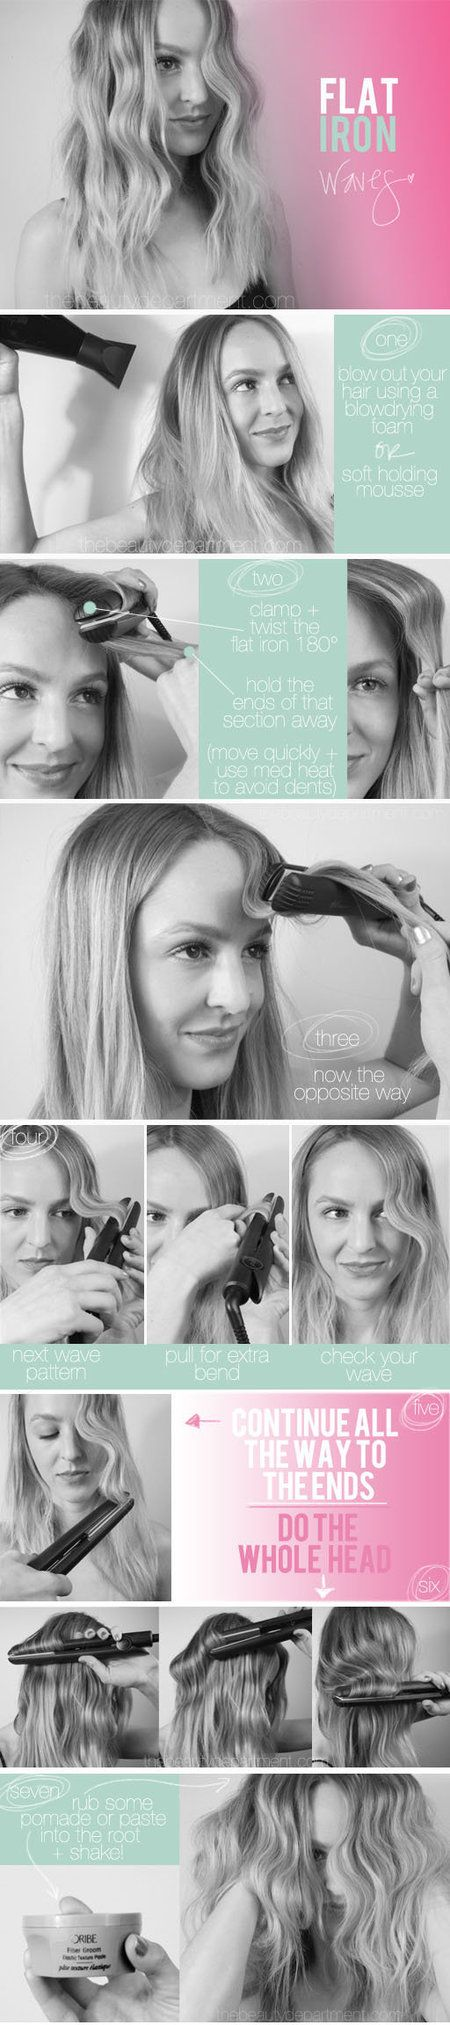 So easy to follow! I really like these glam waves, can't wait to try it with my flat iron! http://thebeautydepartment.com/2012/12/make-waves/